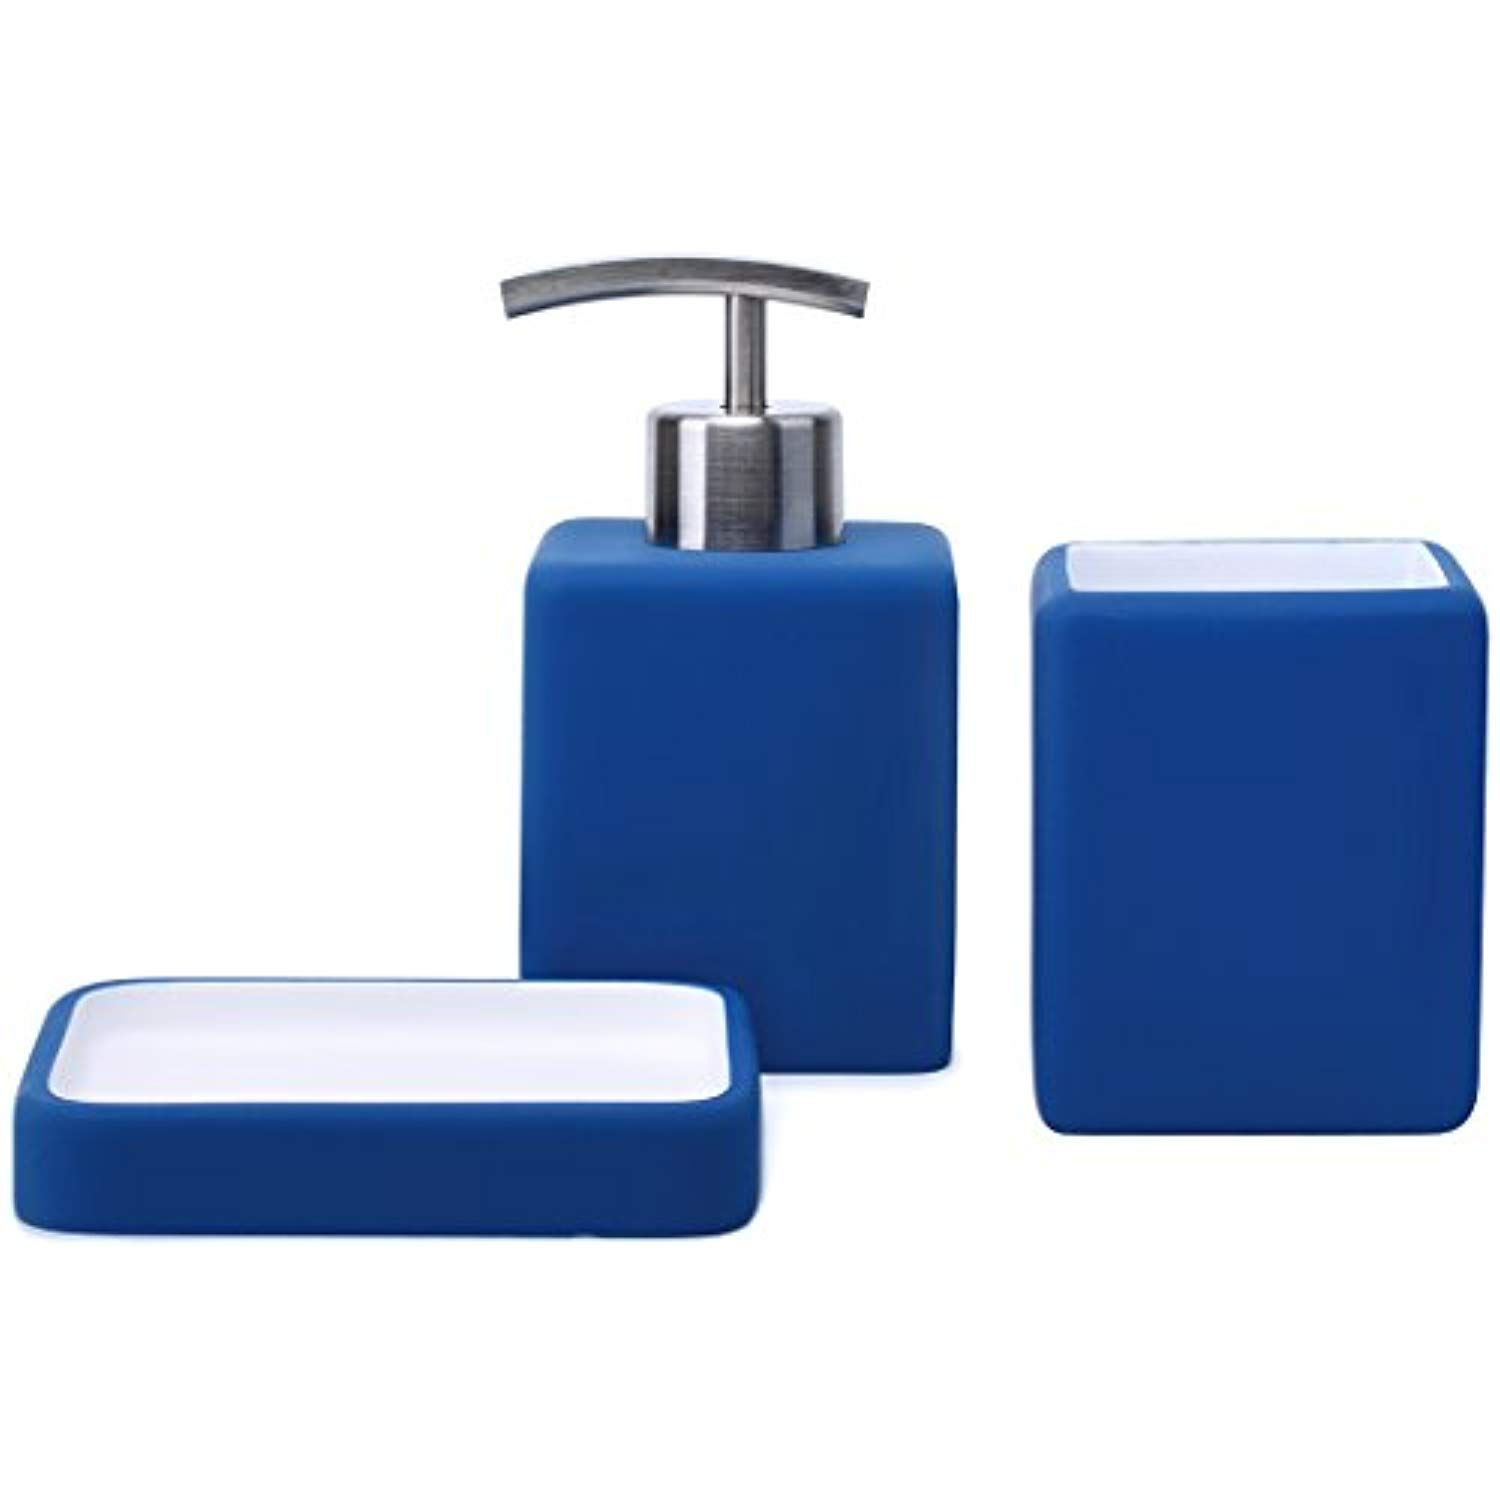 Satu Brown Bathroom Accessories Set Bathroom Soap Dispenser Tumbler Soap Dish 3 Pieces Bathr Bathroom Soap Dispenser Bathroom Accessories Sets Soap Dispenser